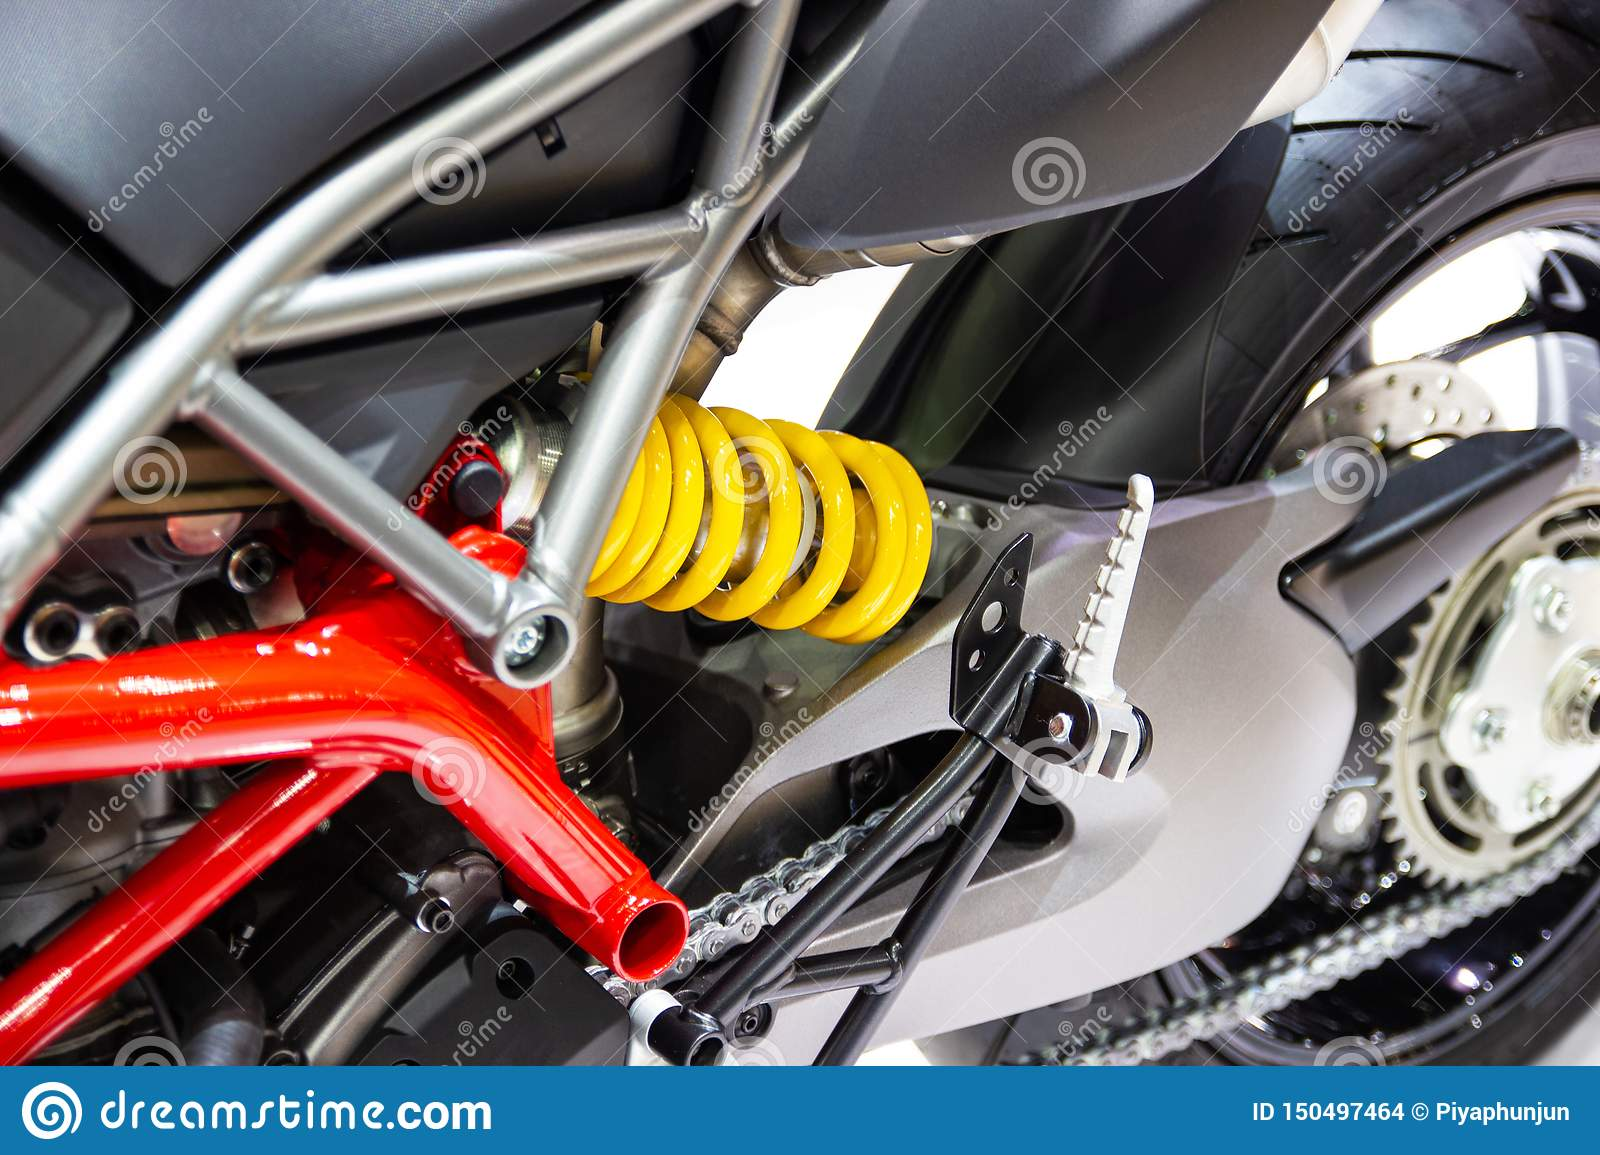 Yellow Shock Absorbers of Motorcycle for absorbing jolts